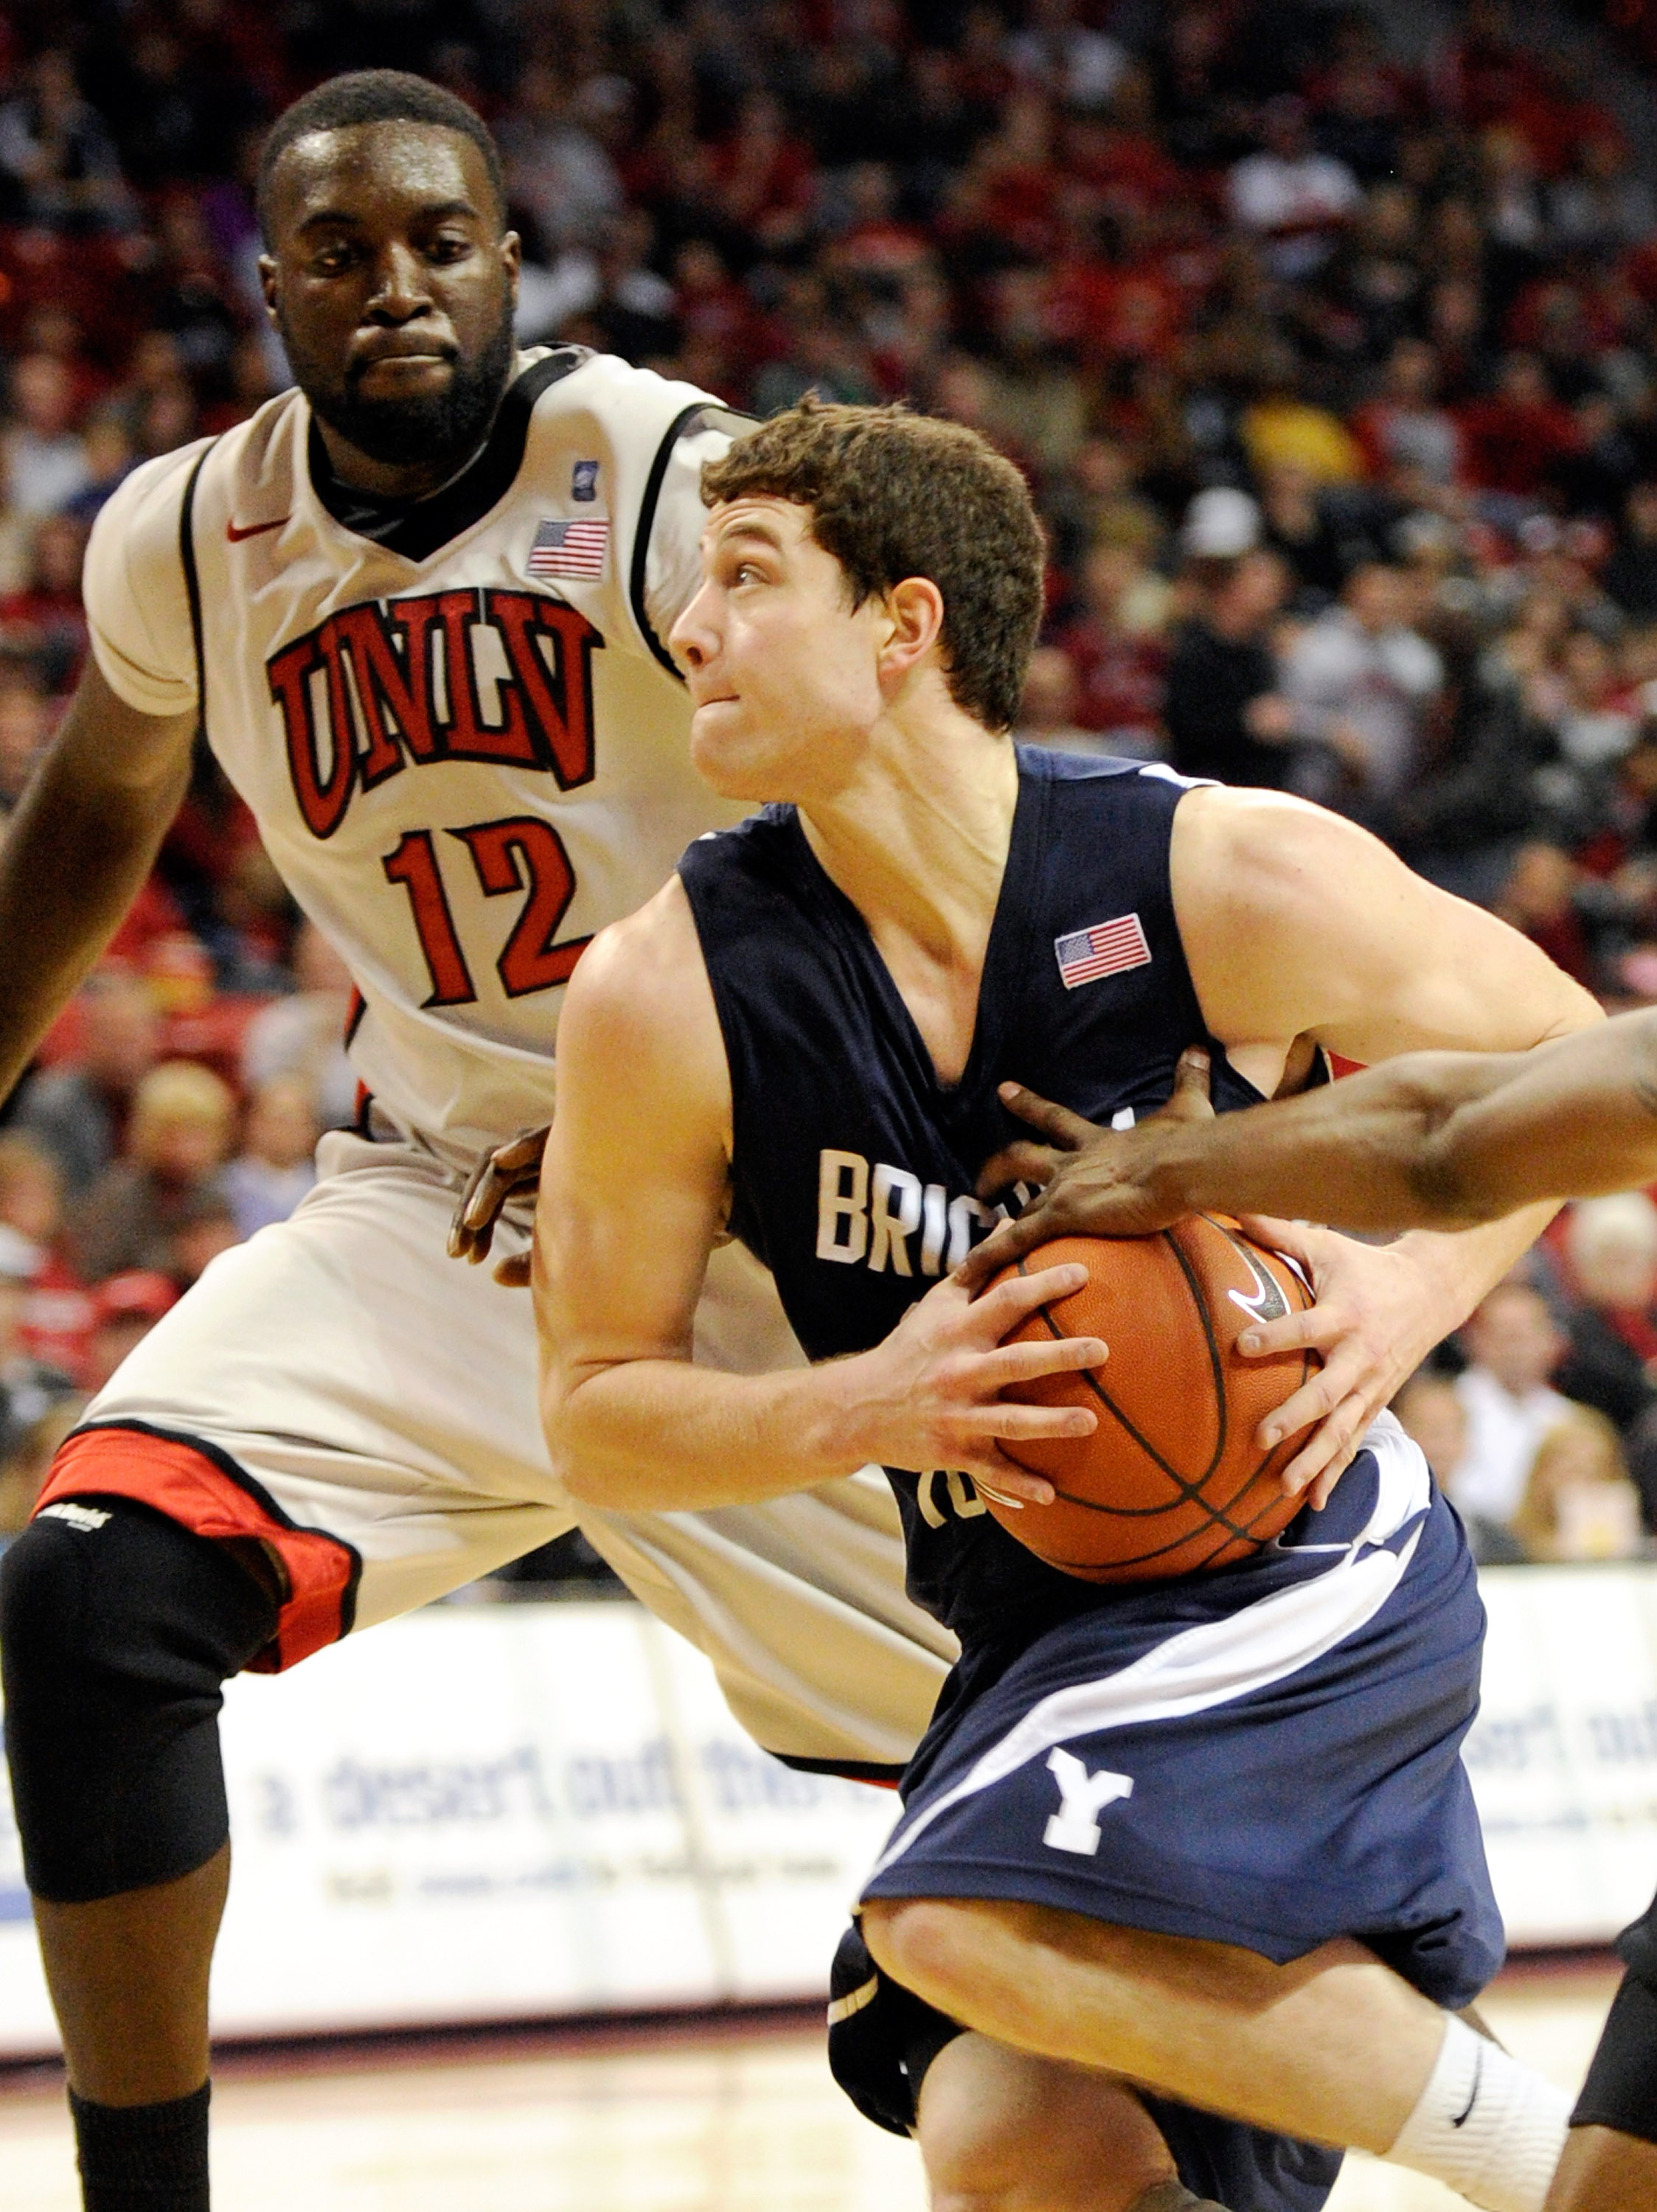 LAS VEGAS, NV - JANUARY 05:  Jimmer Fredette #32 of the Brigham Young University Cougars drives against Brice Massamba #12 of the UNLV Rebels during their game at the Thomas & Mack Center January 5, 2011 in Las Vegas, Nevada. BYU won 89-77.  (Photo by Eth